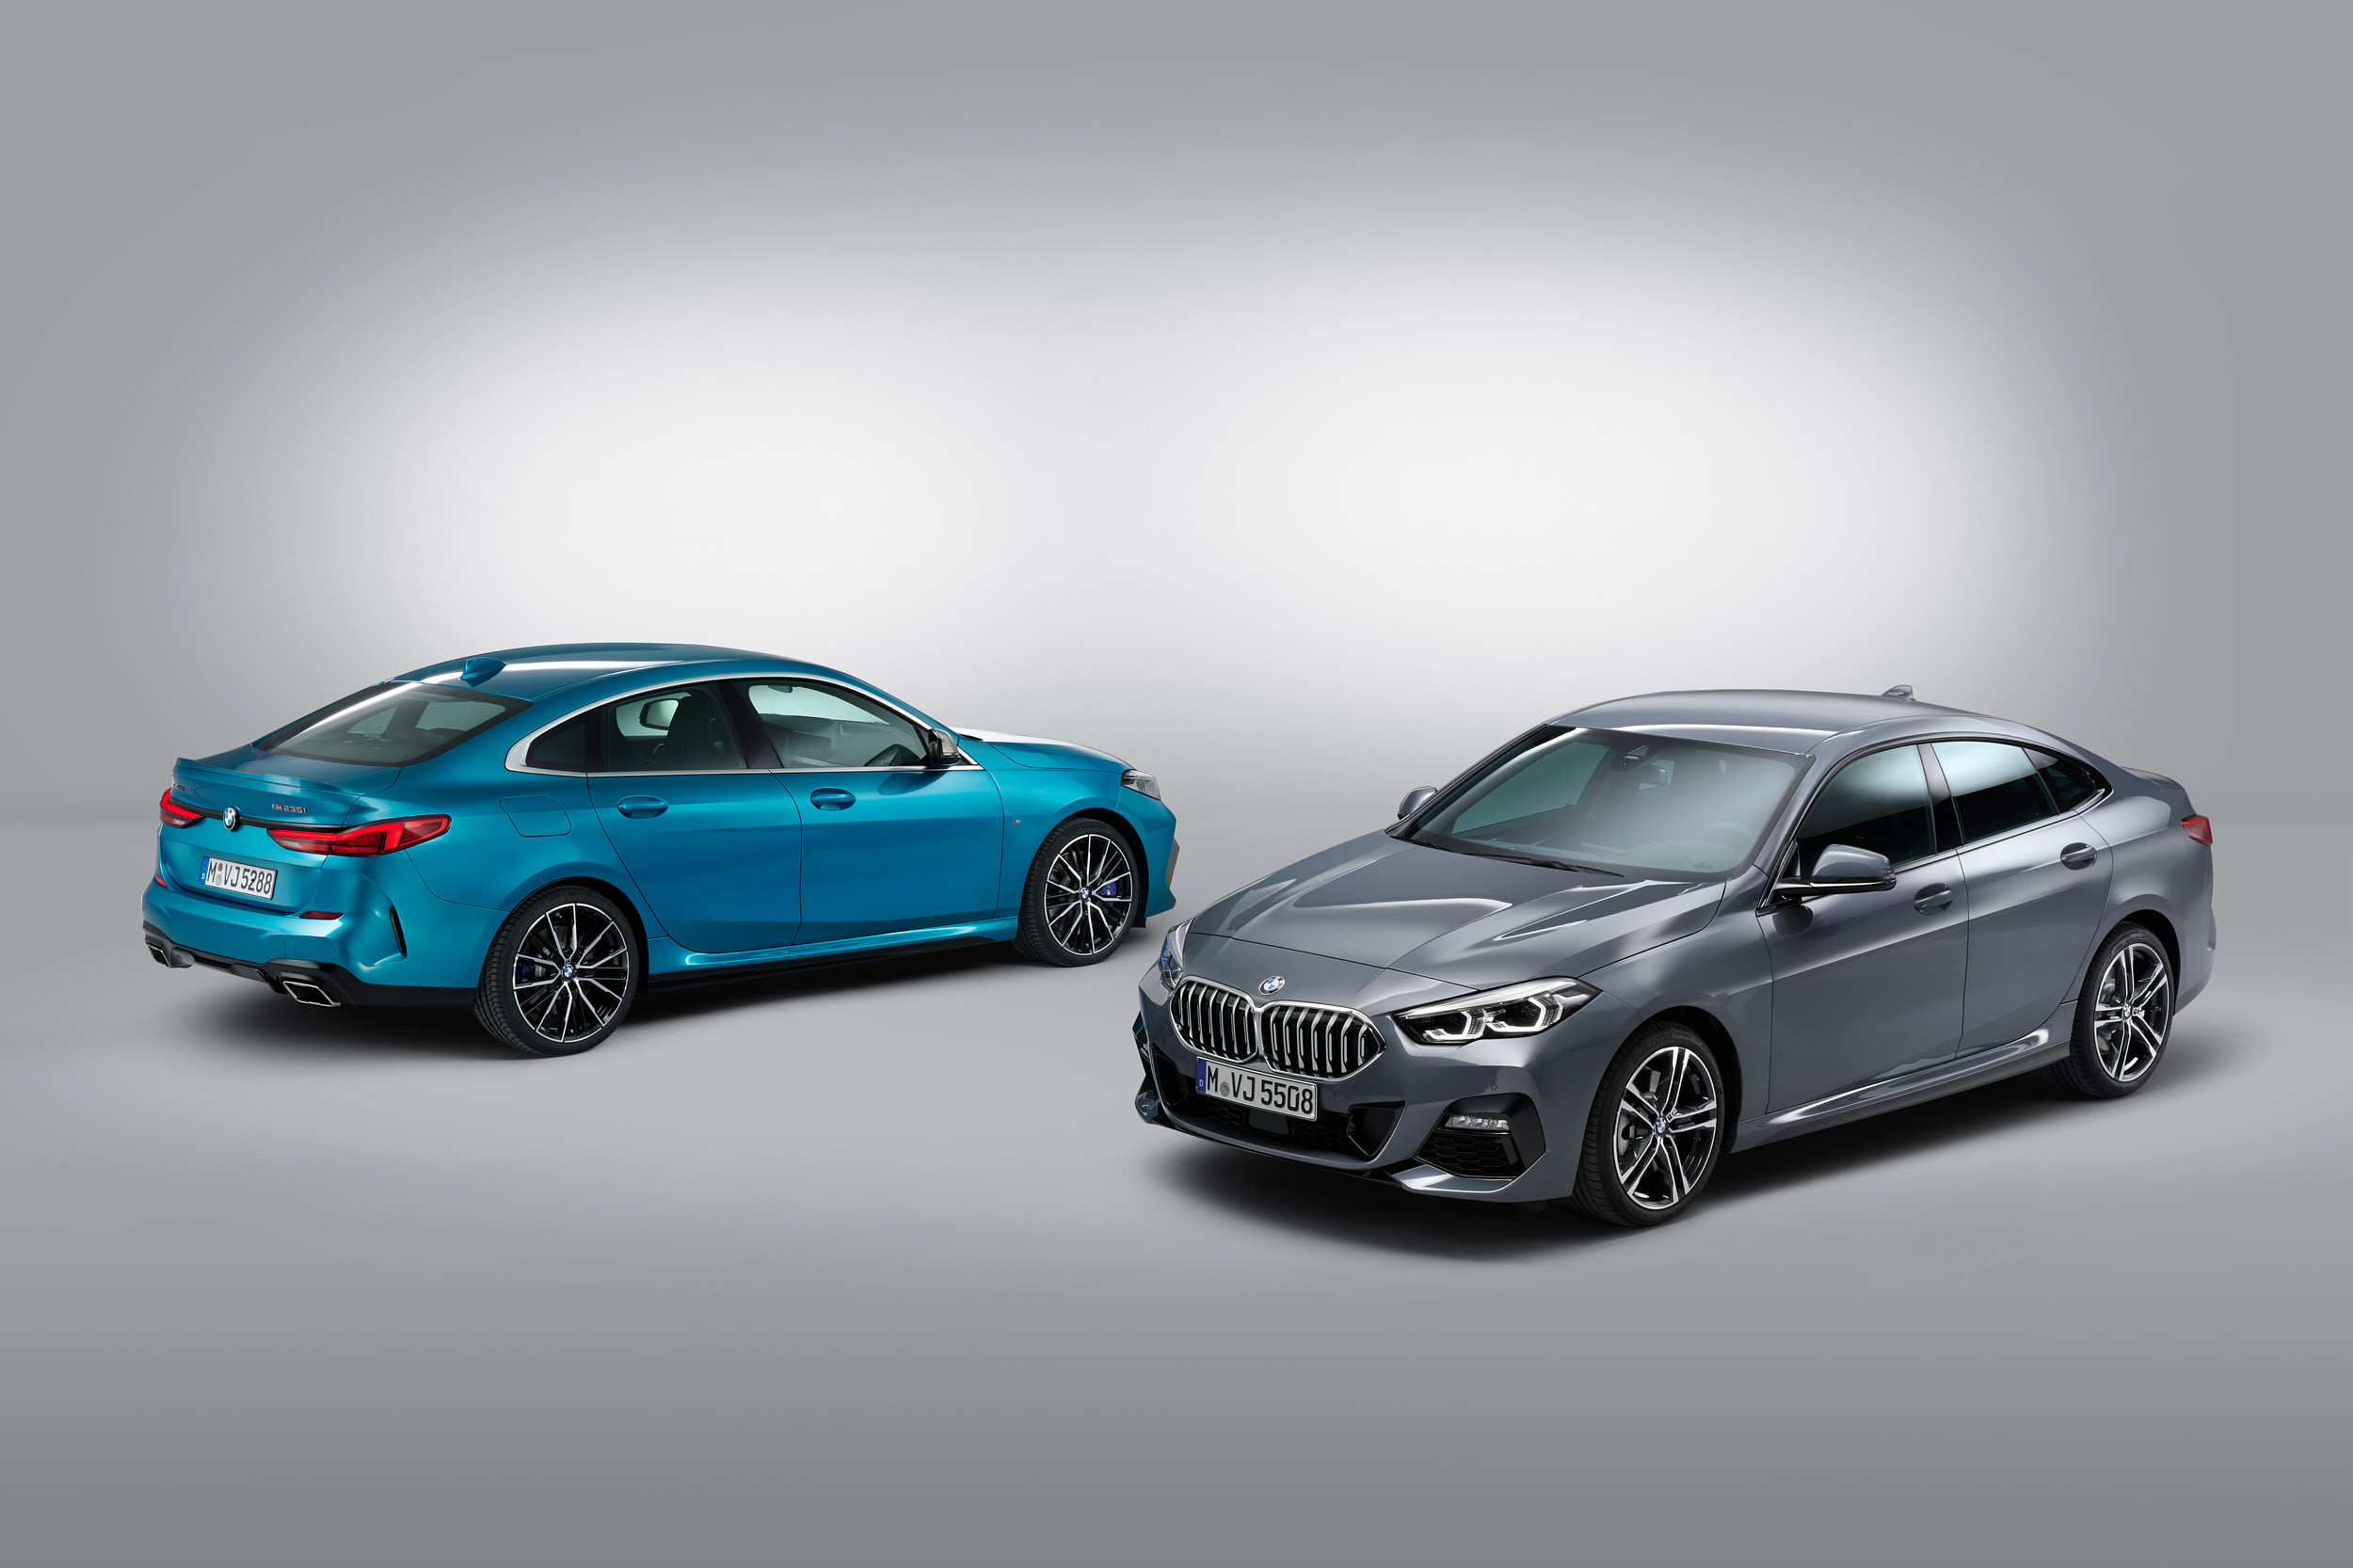 1_BMW_M235i_xDrive_and_BMW_220d_web